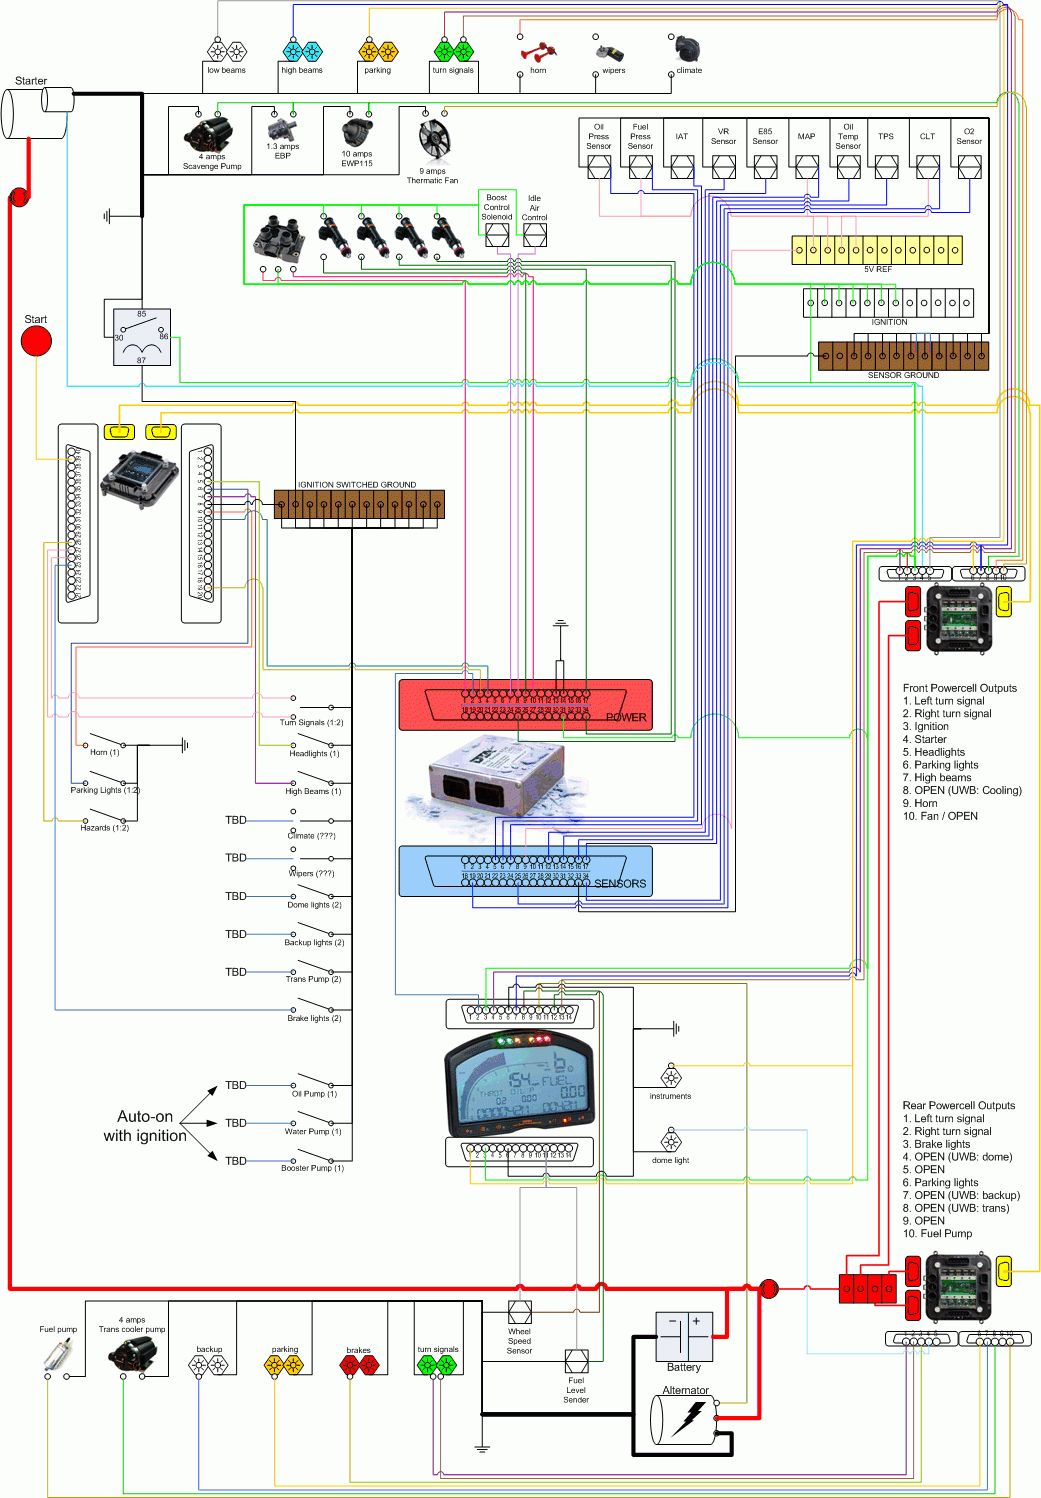 race car wiring schematic wiring diagram pagedrag race car wiring systems wiring diagramrace car wiring schematic [ 1041 x 1498 Pixel ]